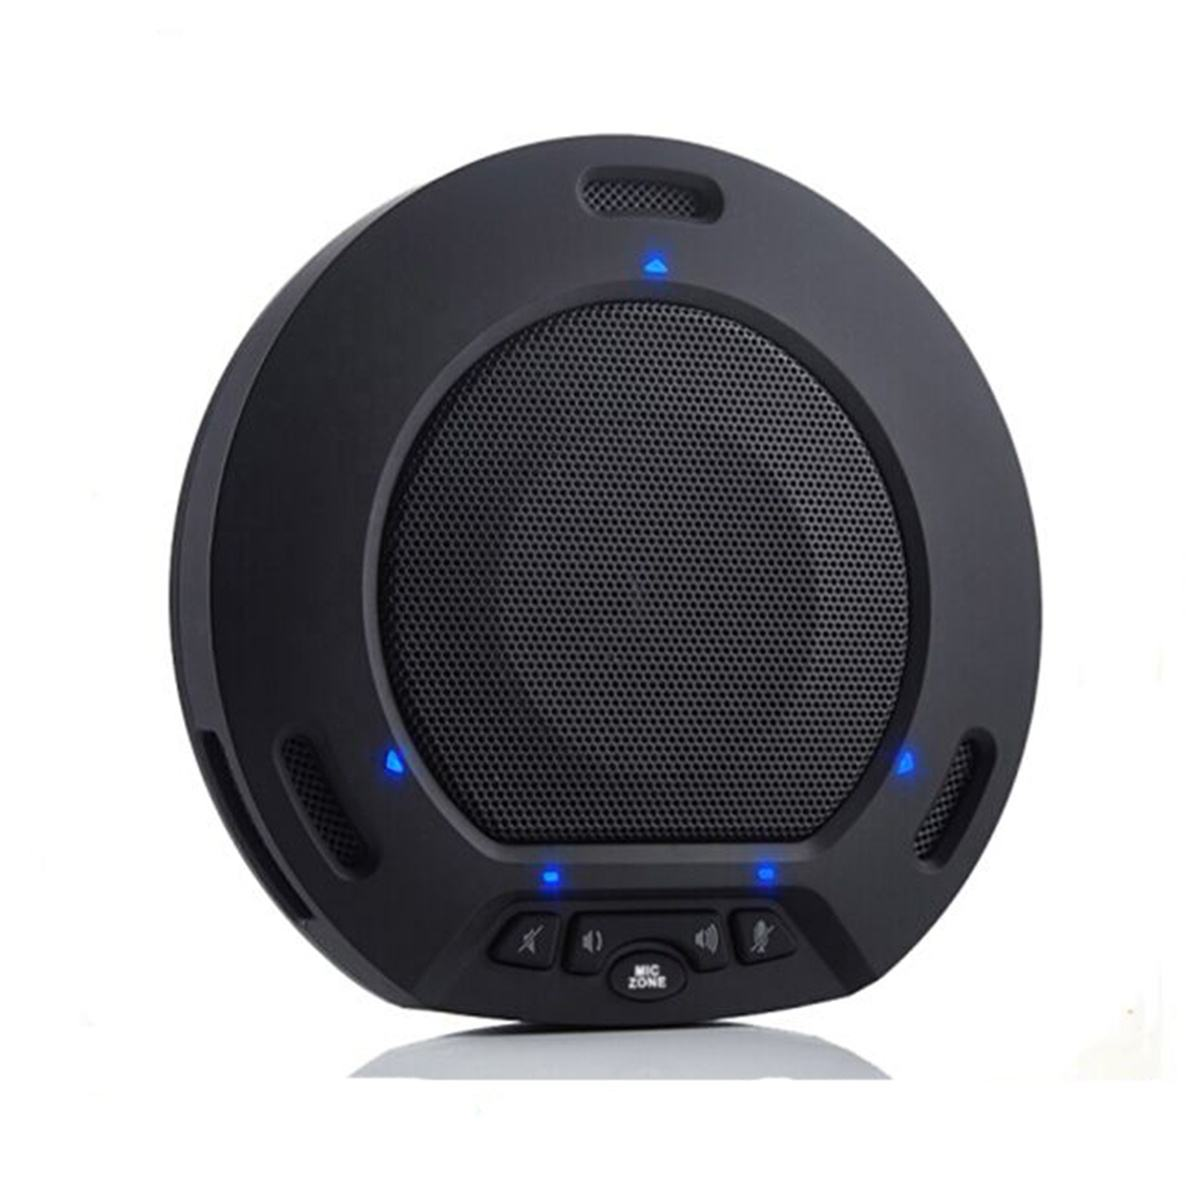 KT-M2W skype speaker microphone equipment best conference bluetooth speakerphone